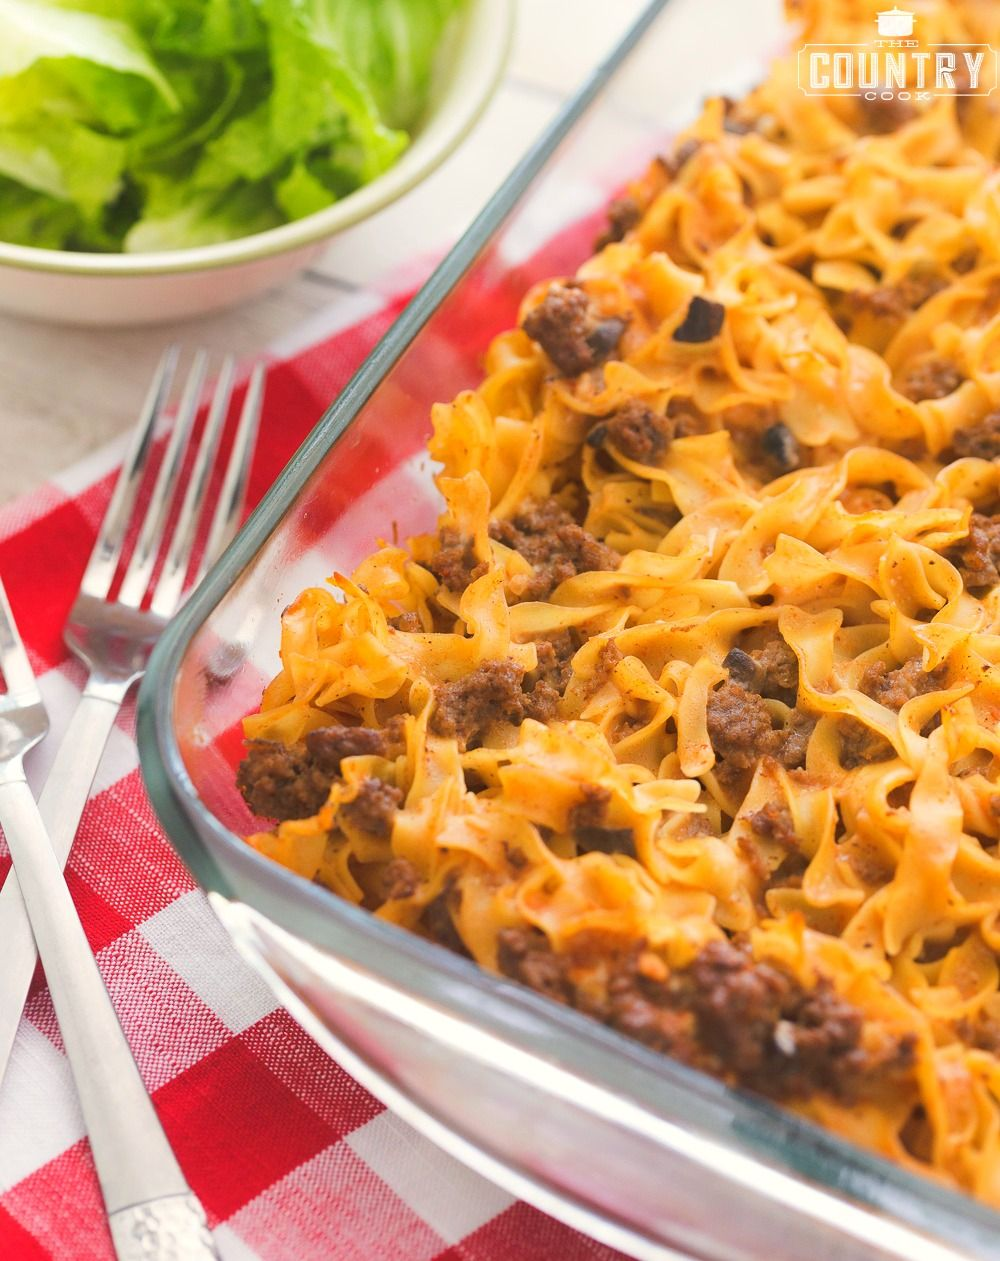 Amish Country Casserole Video The Country Cook Recipe Recipes Ground Beef Casserole Recipes Amish Recipes